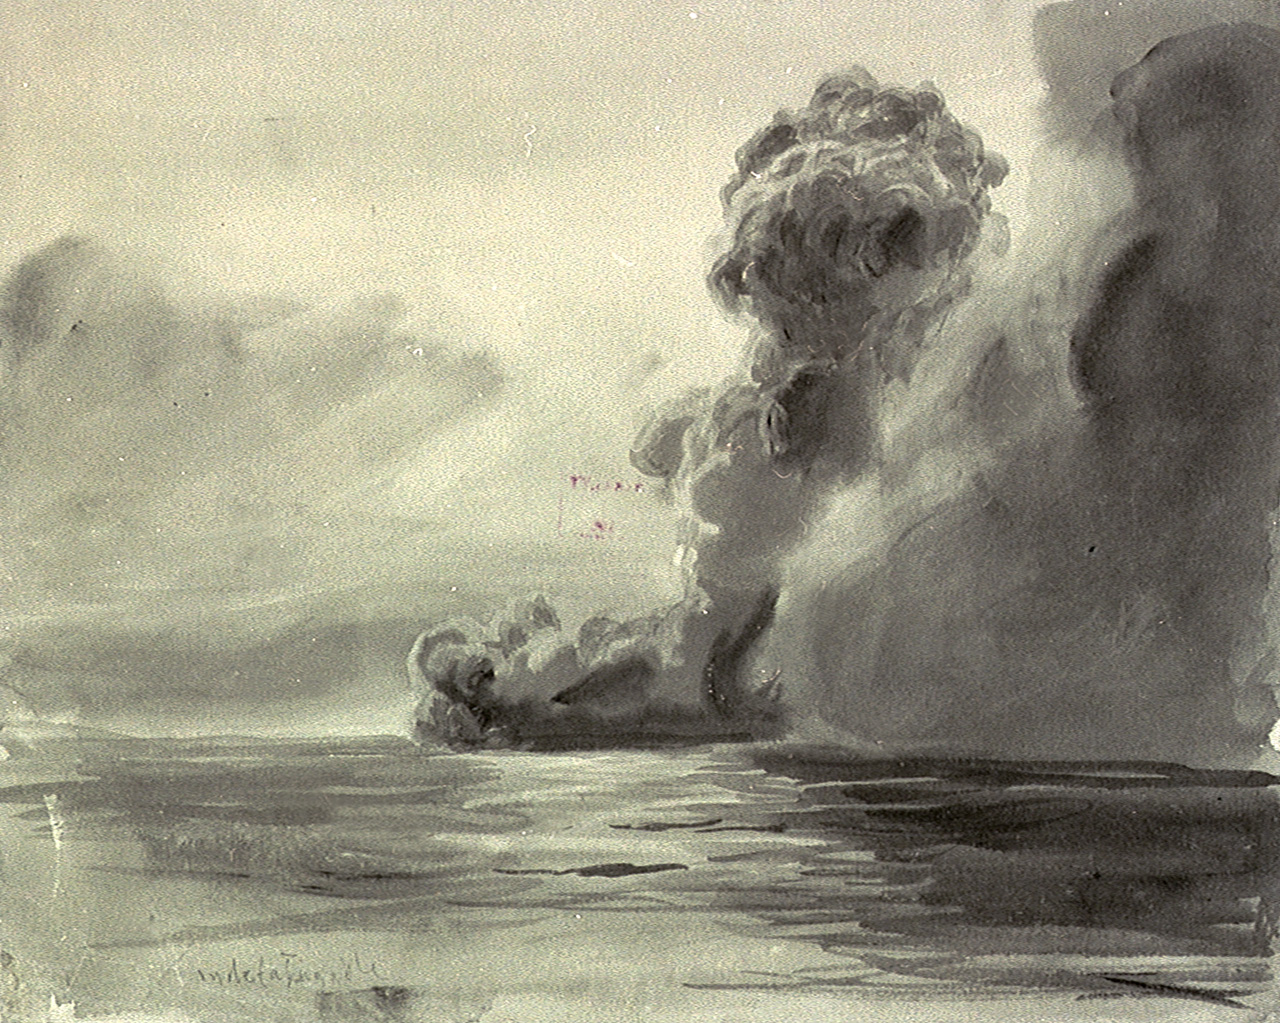 Painting– A painting by William Lionel Wyllie showing HMS Indefatigable exploding at the Battle of Jutland, 31 May 1916. Credit: National Maritime Museum, Greenwich, London, Caird Collection.